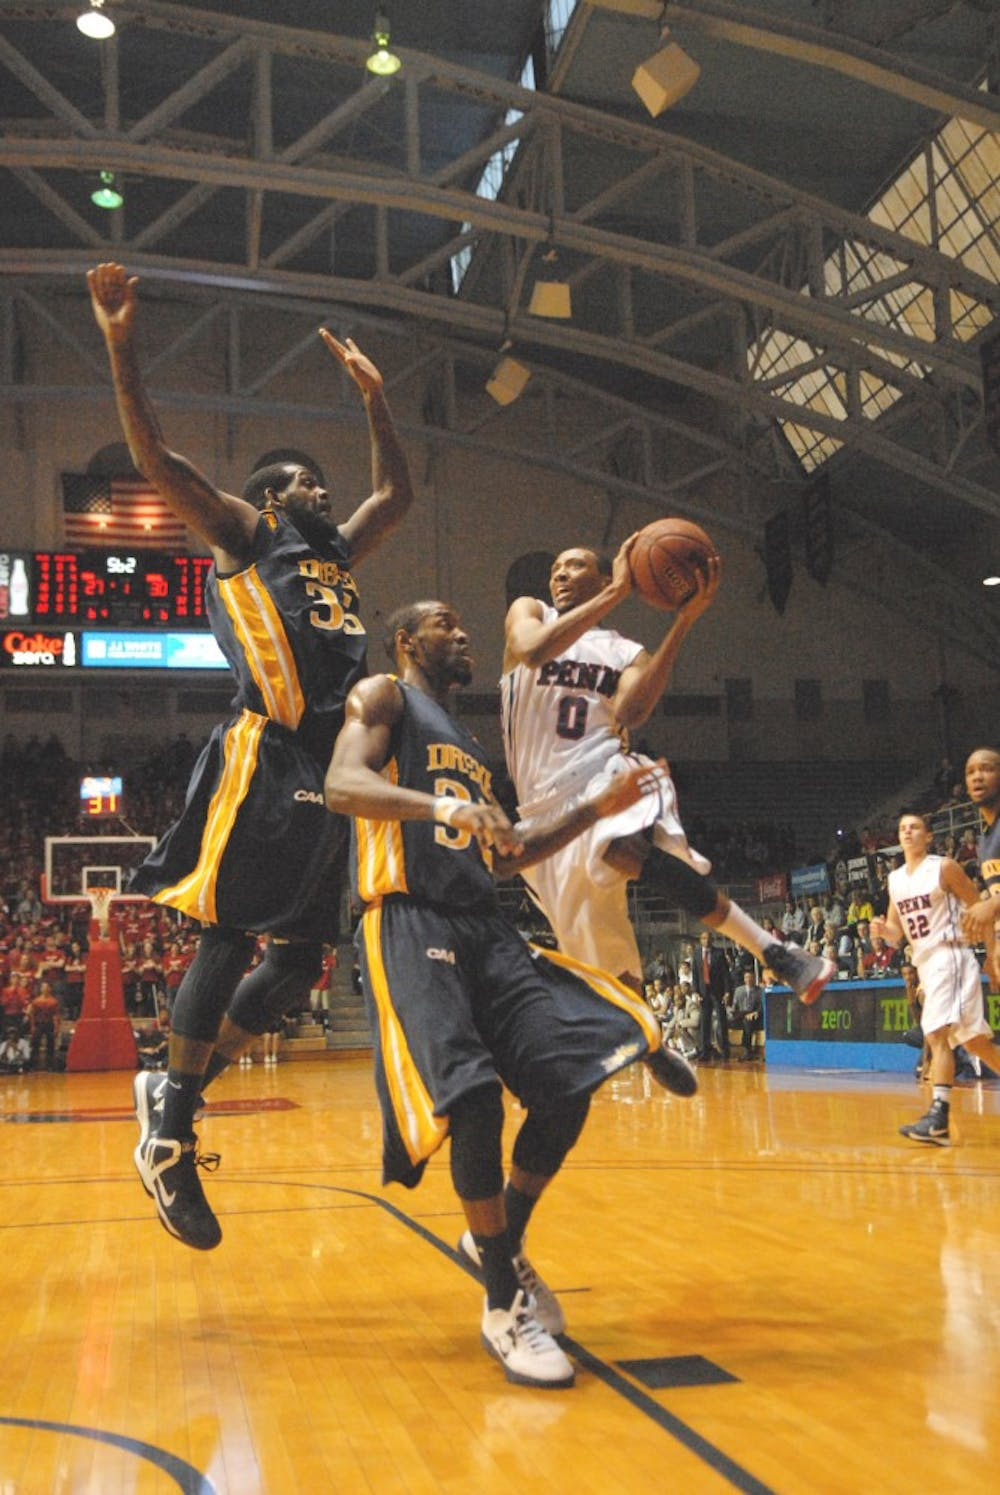 Men's Basketball vs. Drexel. Penn lost 59-61